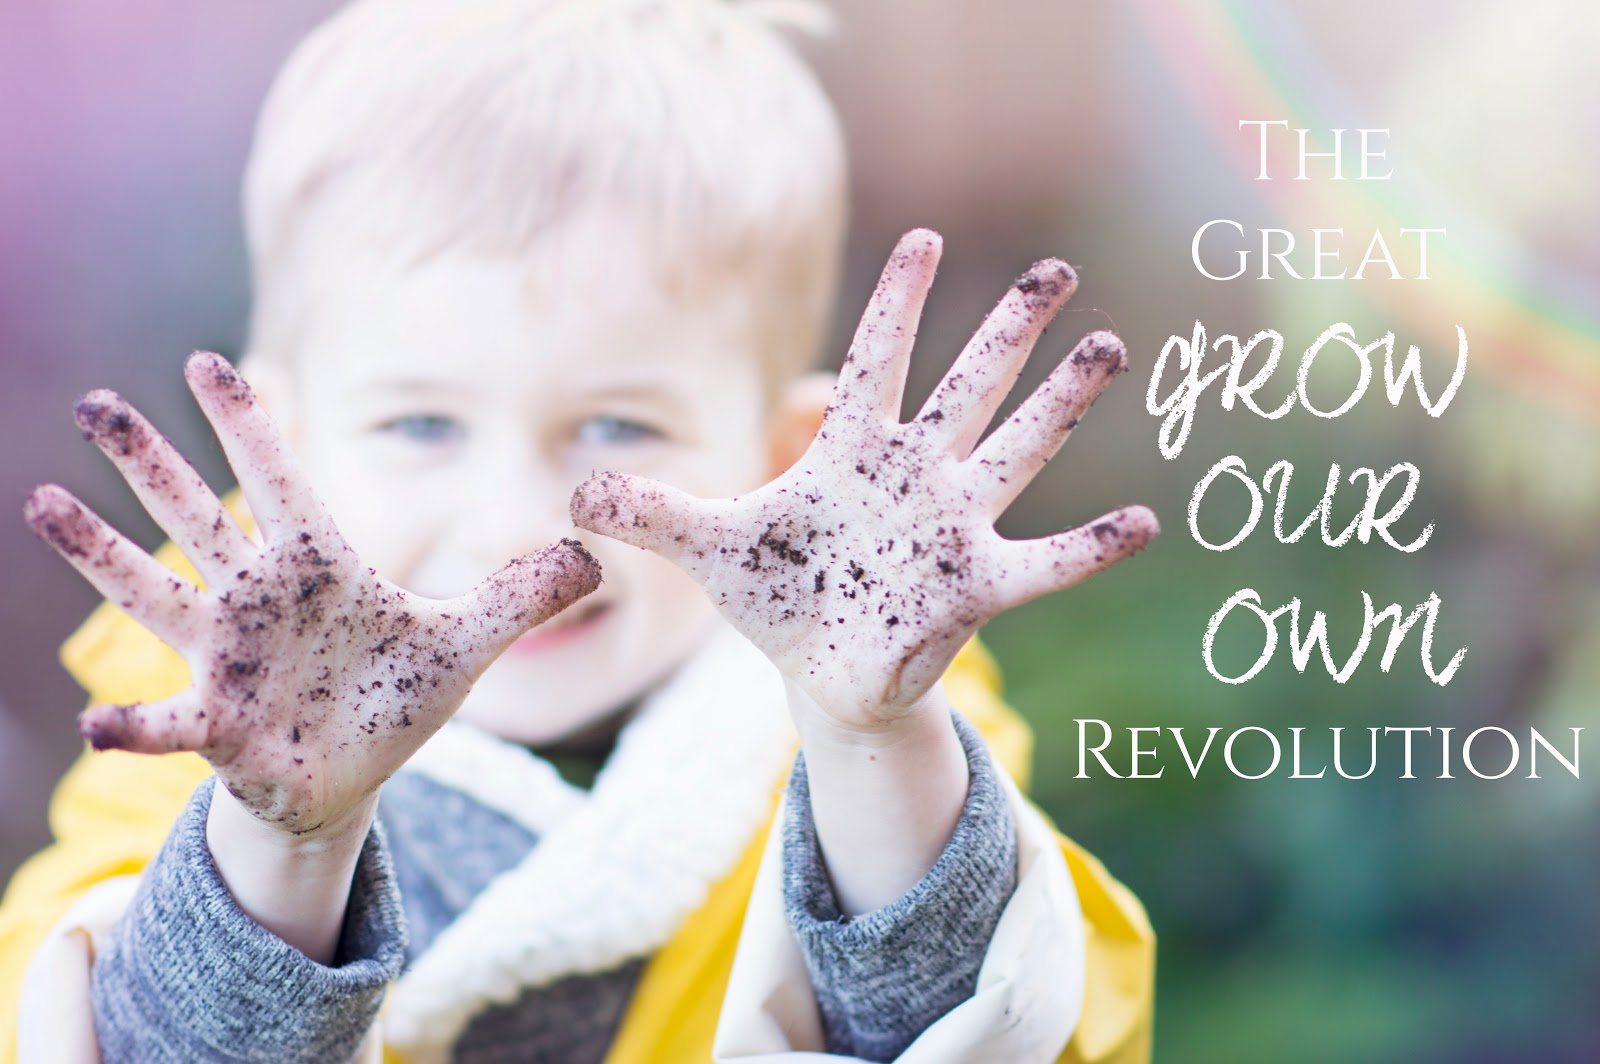 THE GREAT GROW OUR OWN REVOLUTION